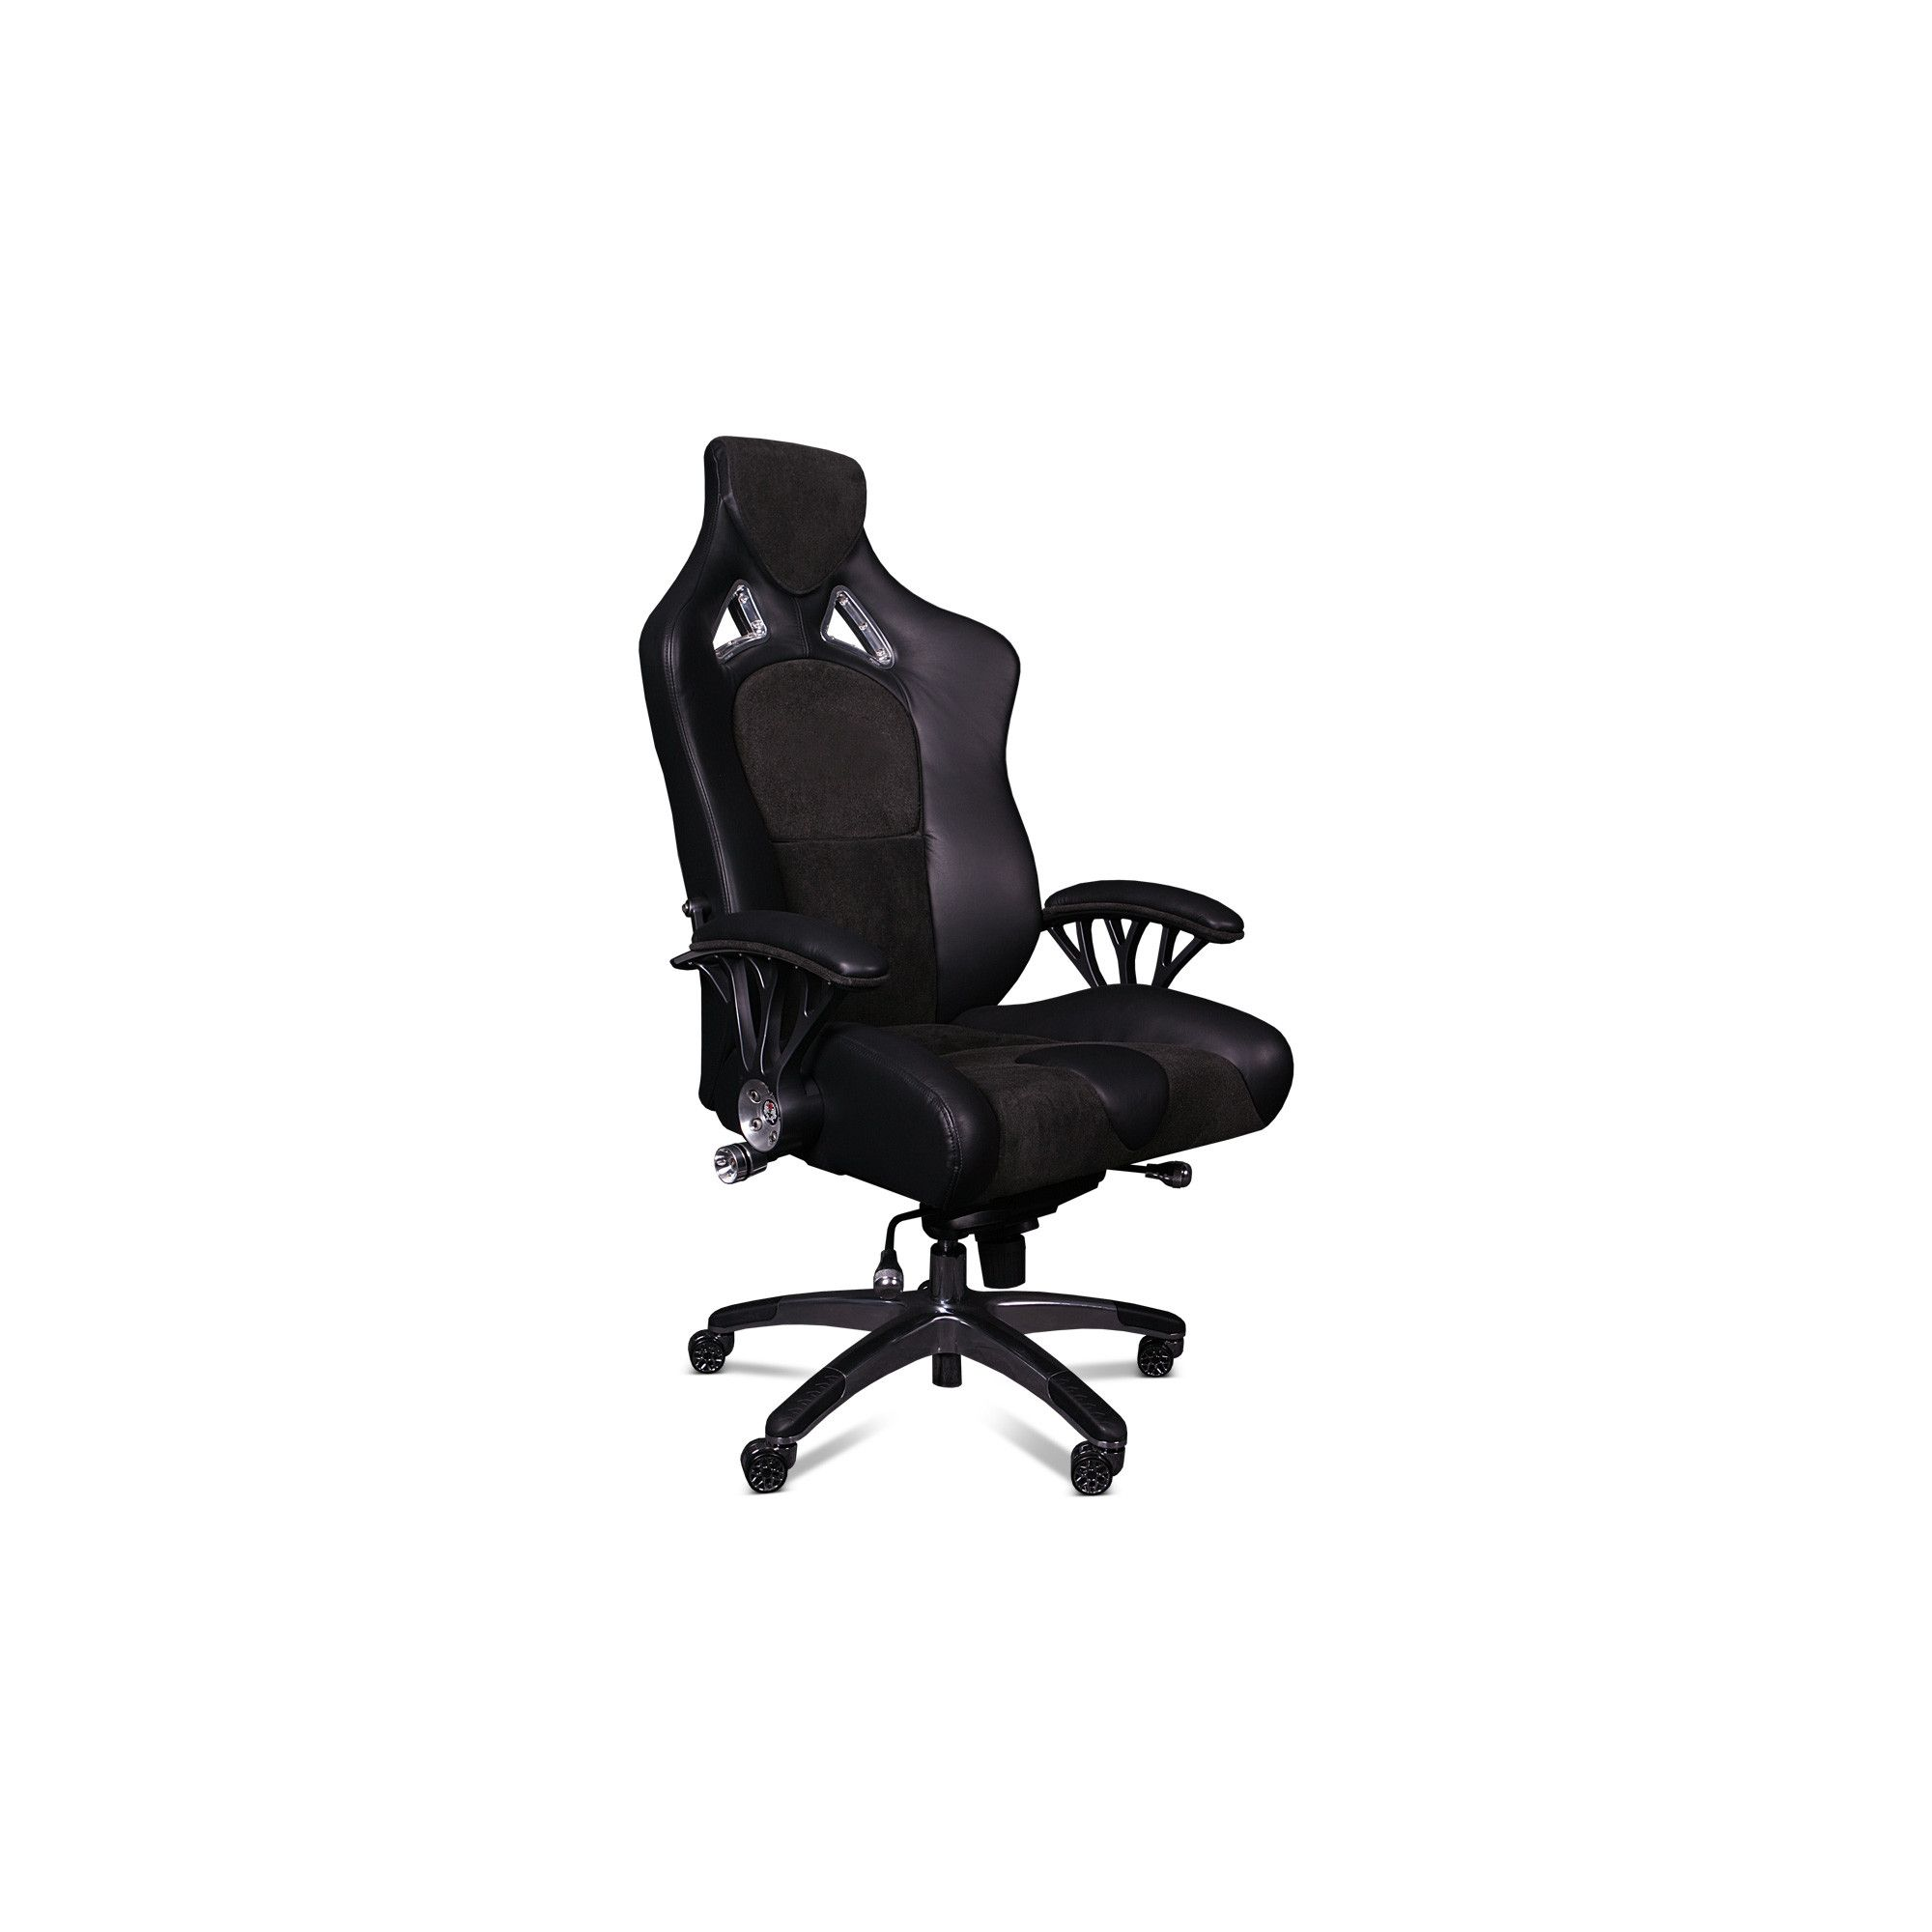 ProMech Racing Speed998 Upholstered Office Racing Chair - Shadow Black Leather/Suede at Tesco Direct